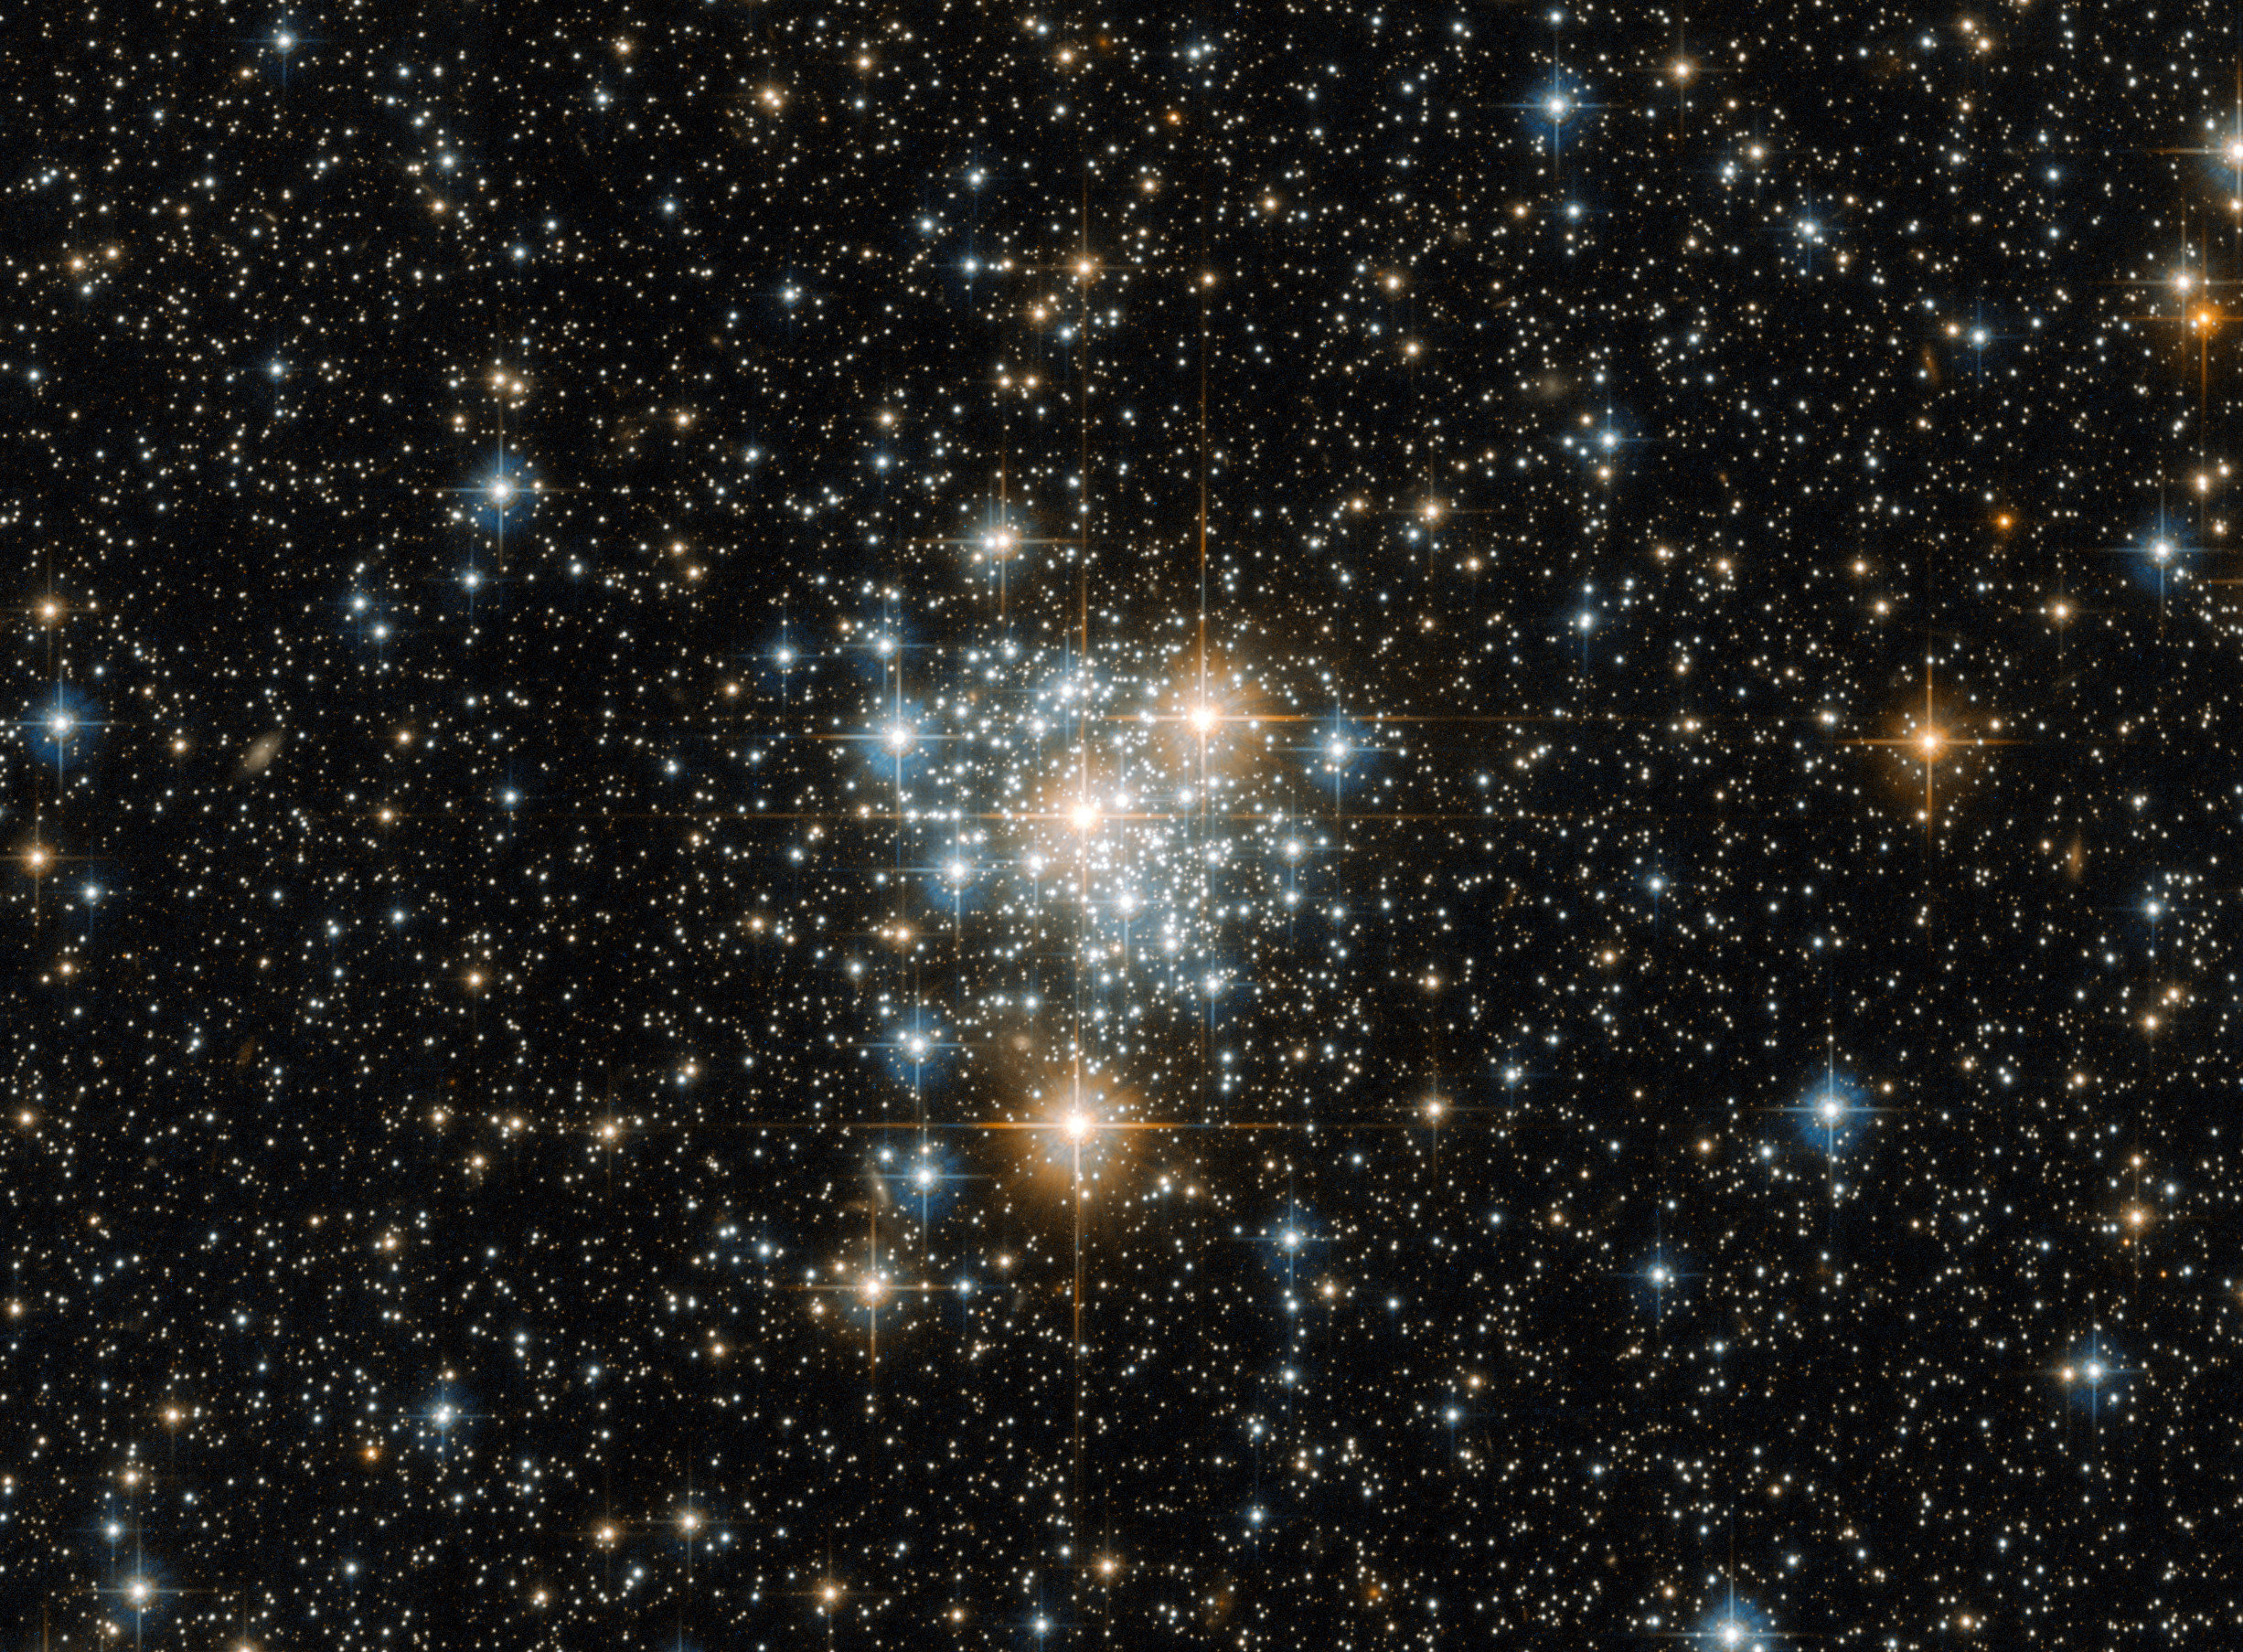 This NASA/ESA Hubble Space Telescope view of magnitude +11.7 open cluster NGC299 shows a field of view of 2.04 x 1.51 arcminutes. The cluster lies 200,000 light-years away within the Small Magellanic Cloud in the constellation of Tucana (The Toucan), α=00h53.4m, δ=-72°12' (J2000.0). Click the picture for a full-size version. Image credit: ESA/Hubble & NASA.